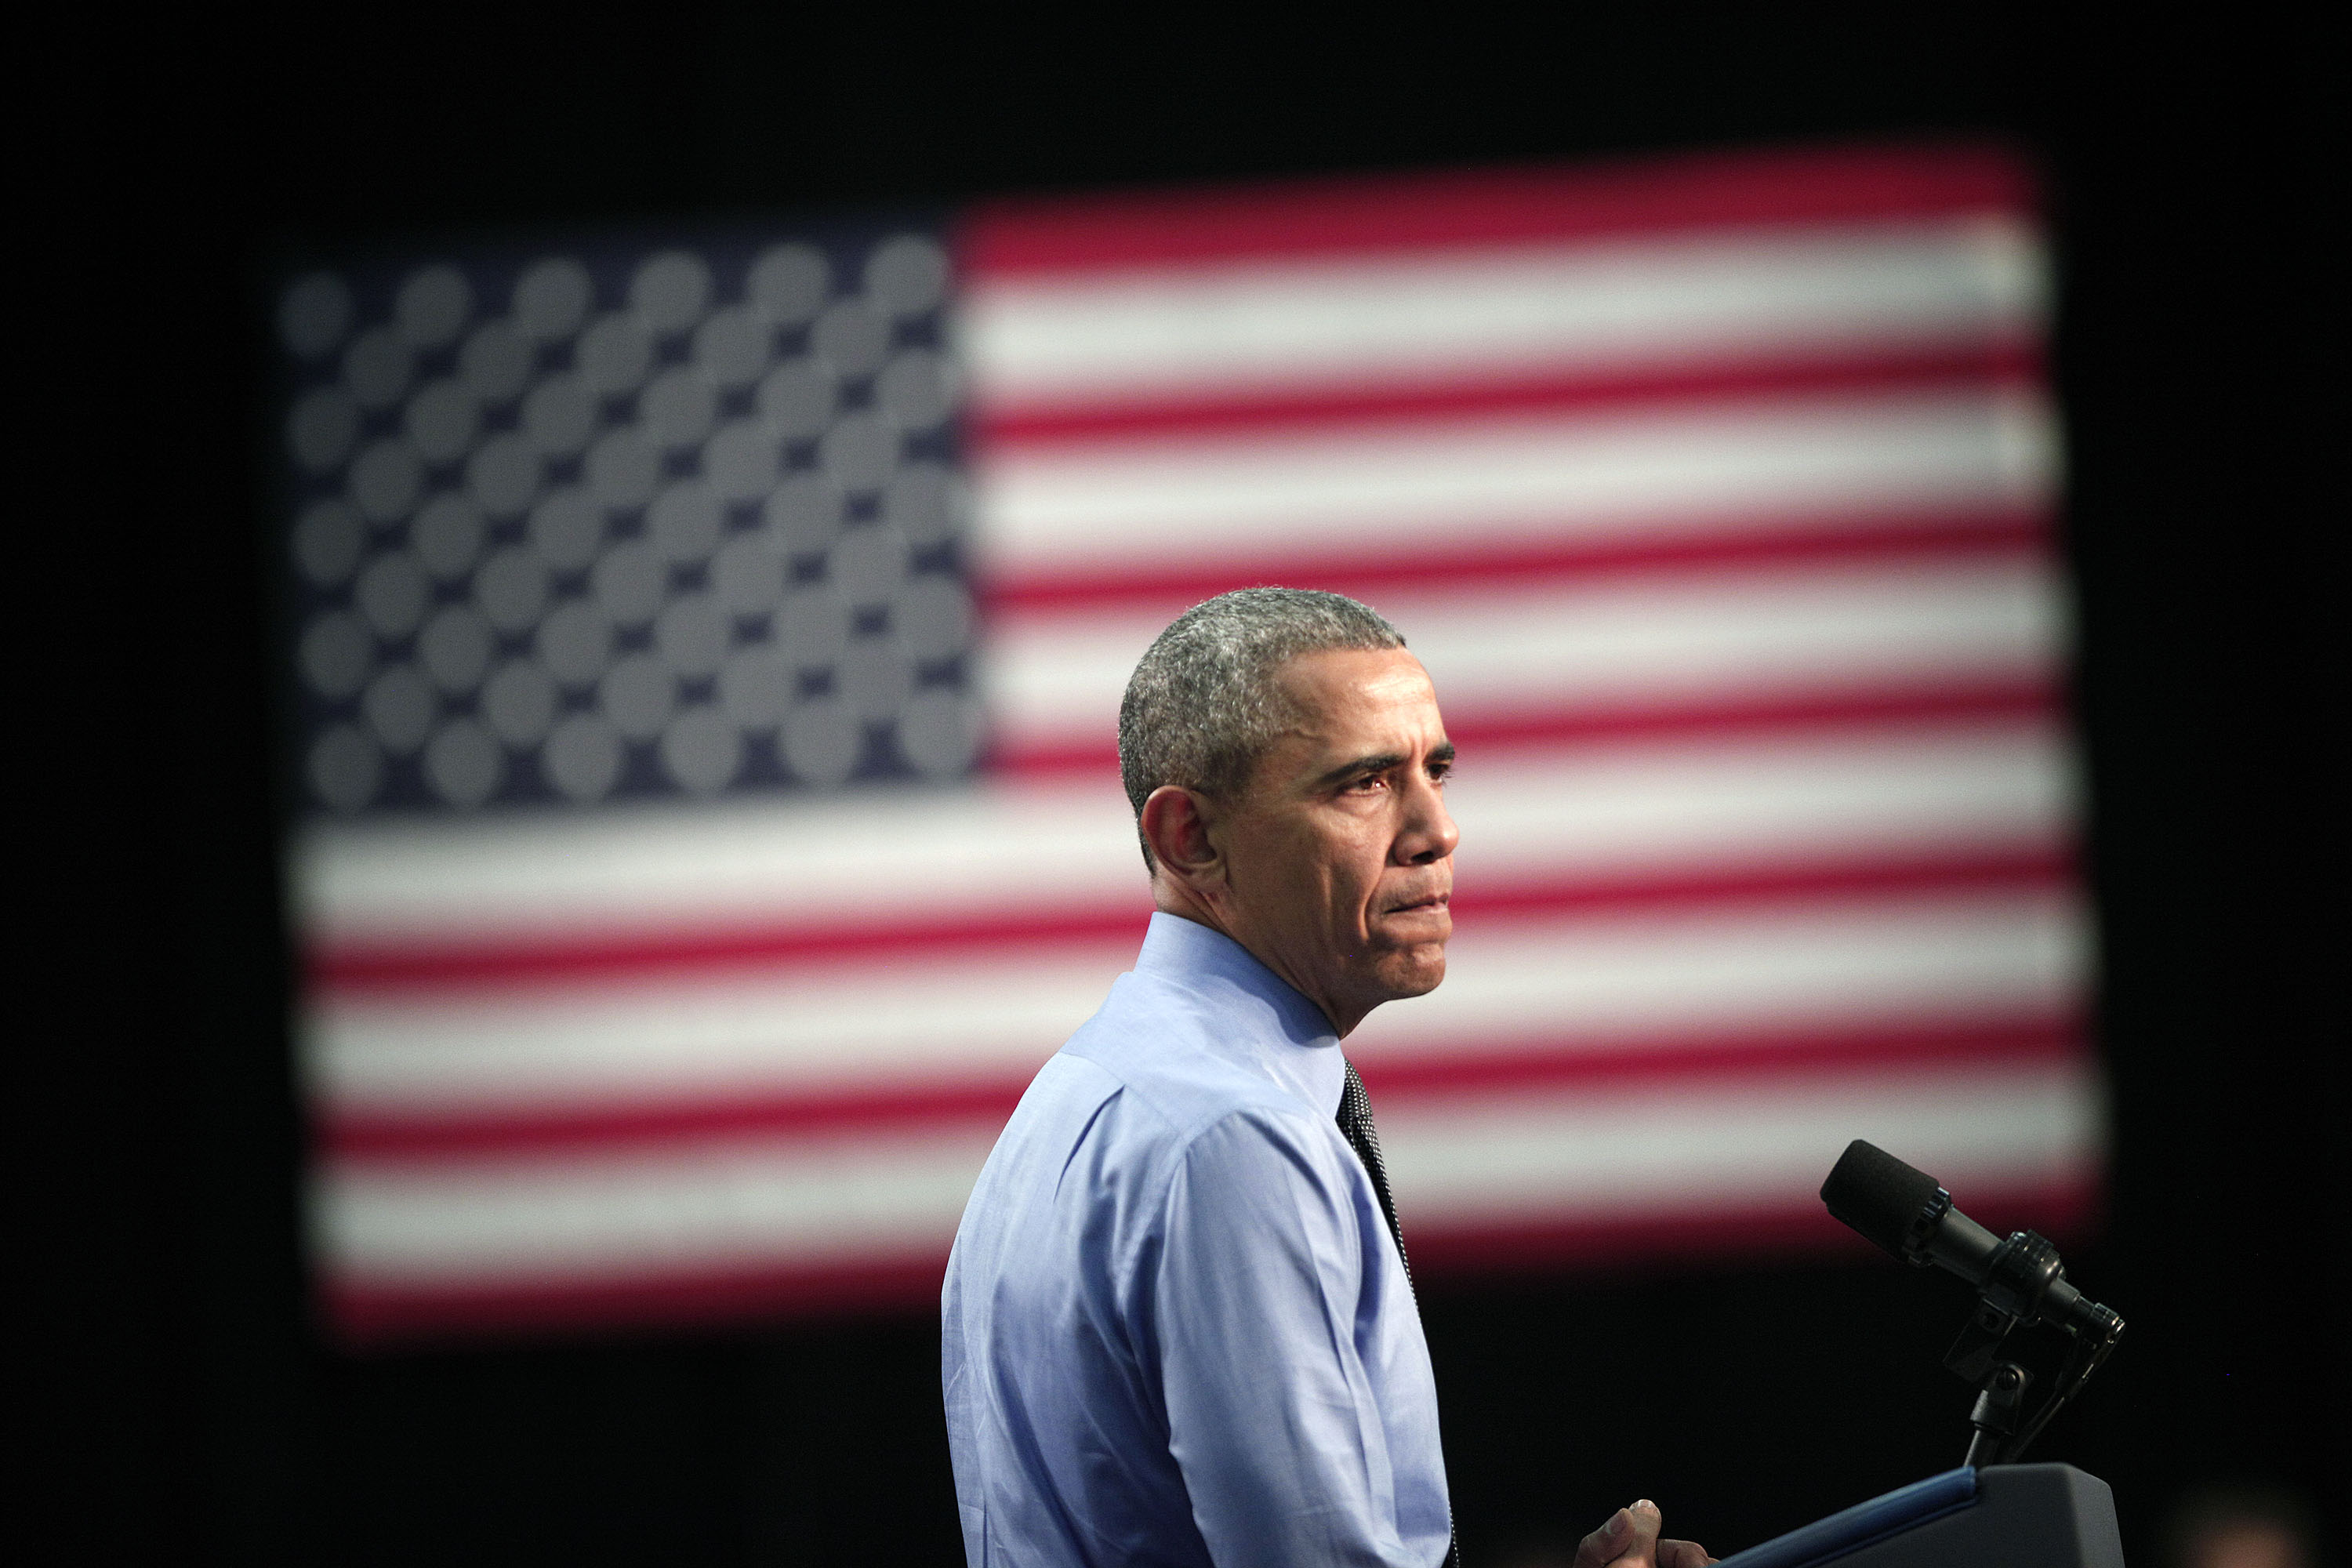 President Barack Obama speaks at Northwest High School about the Flint water contamination crisis on May 4 in Flint, Michigan.